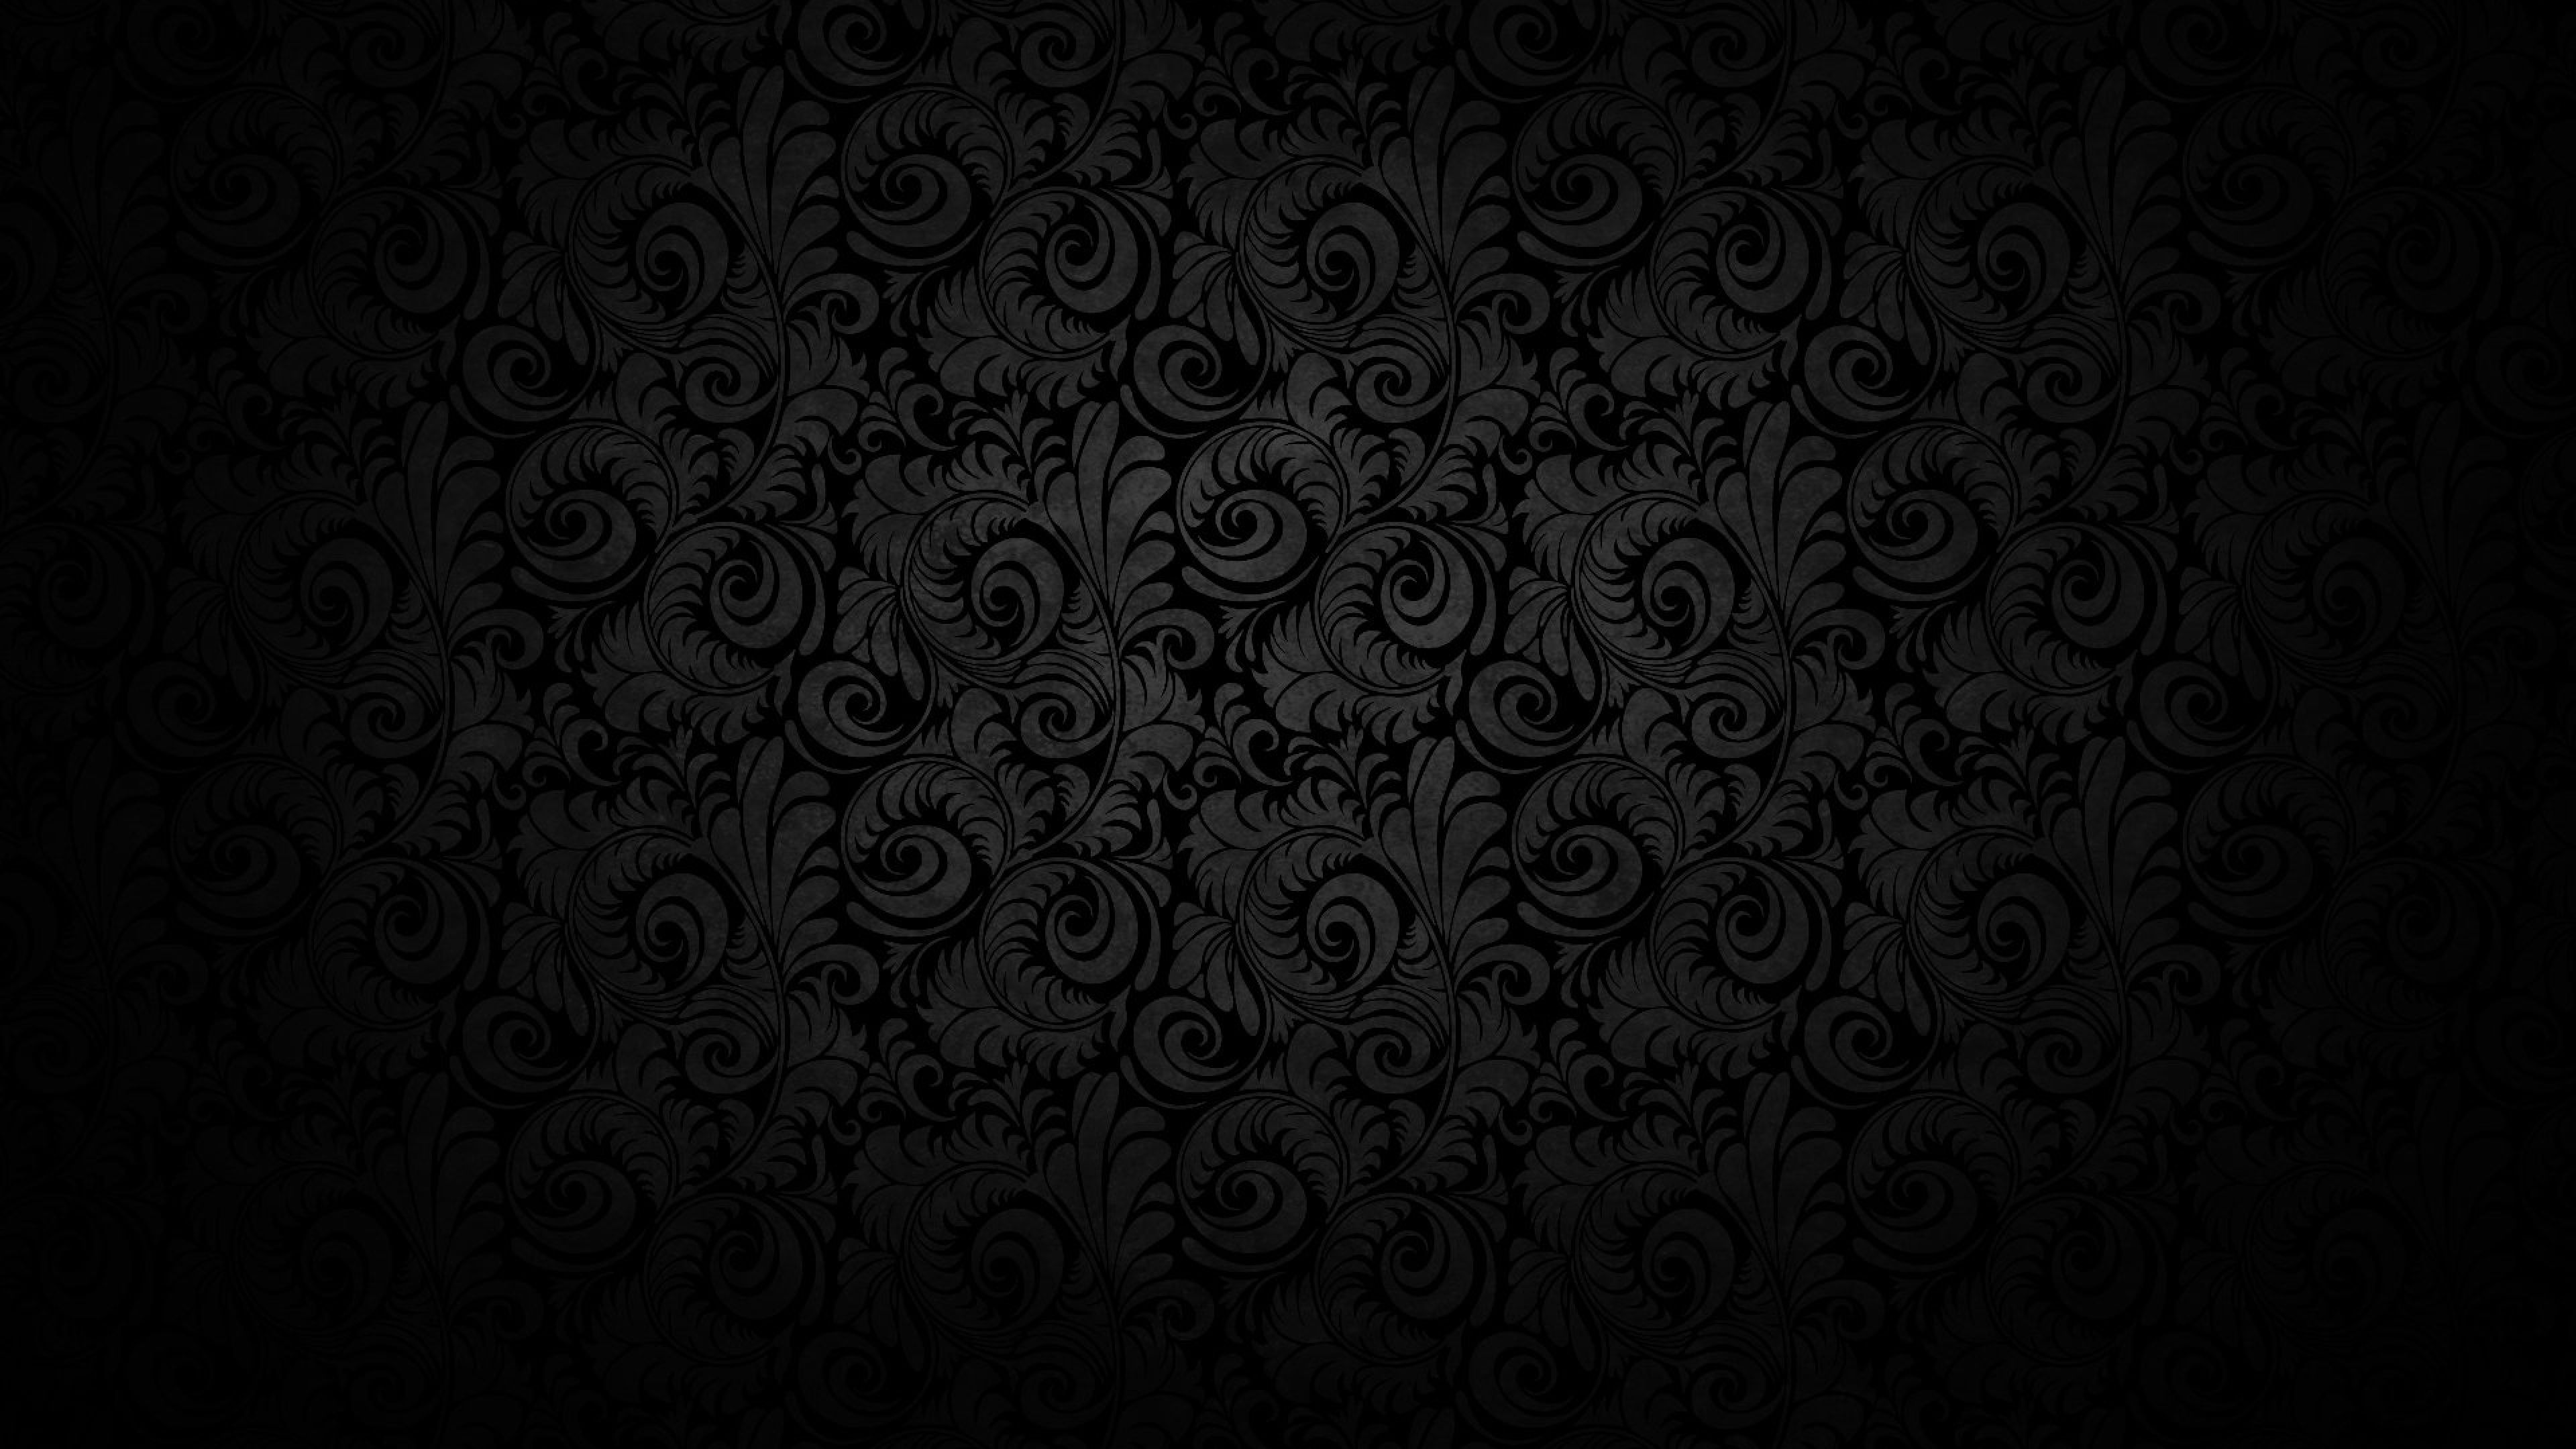 Black wallpaper in fhd for free download for android - Black wallpaper for android download ...